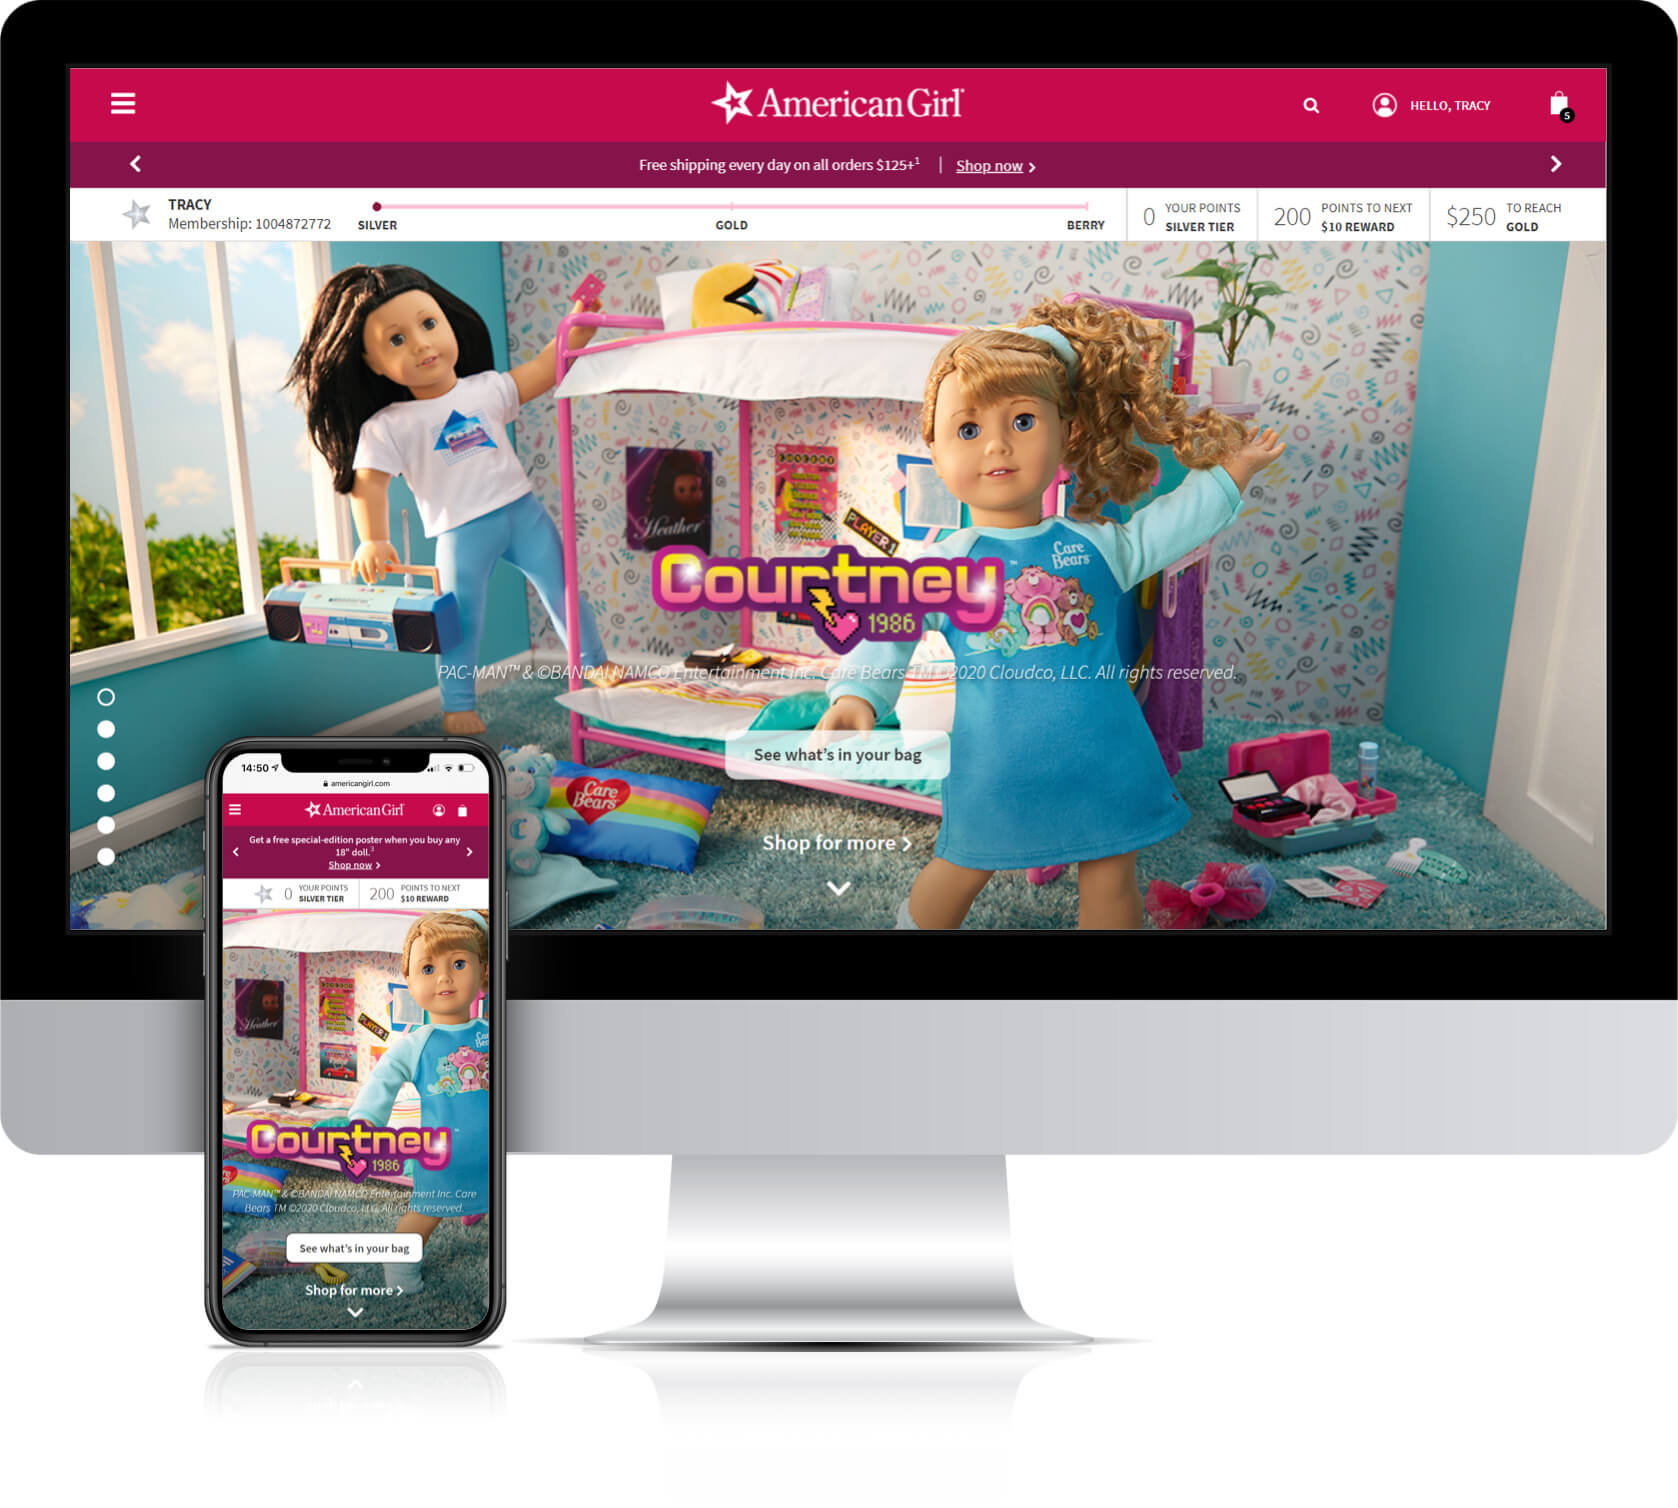 American Girl Account Web Page